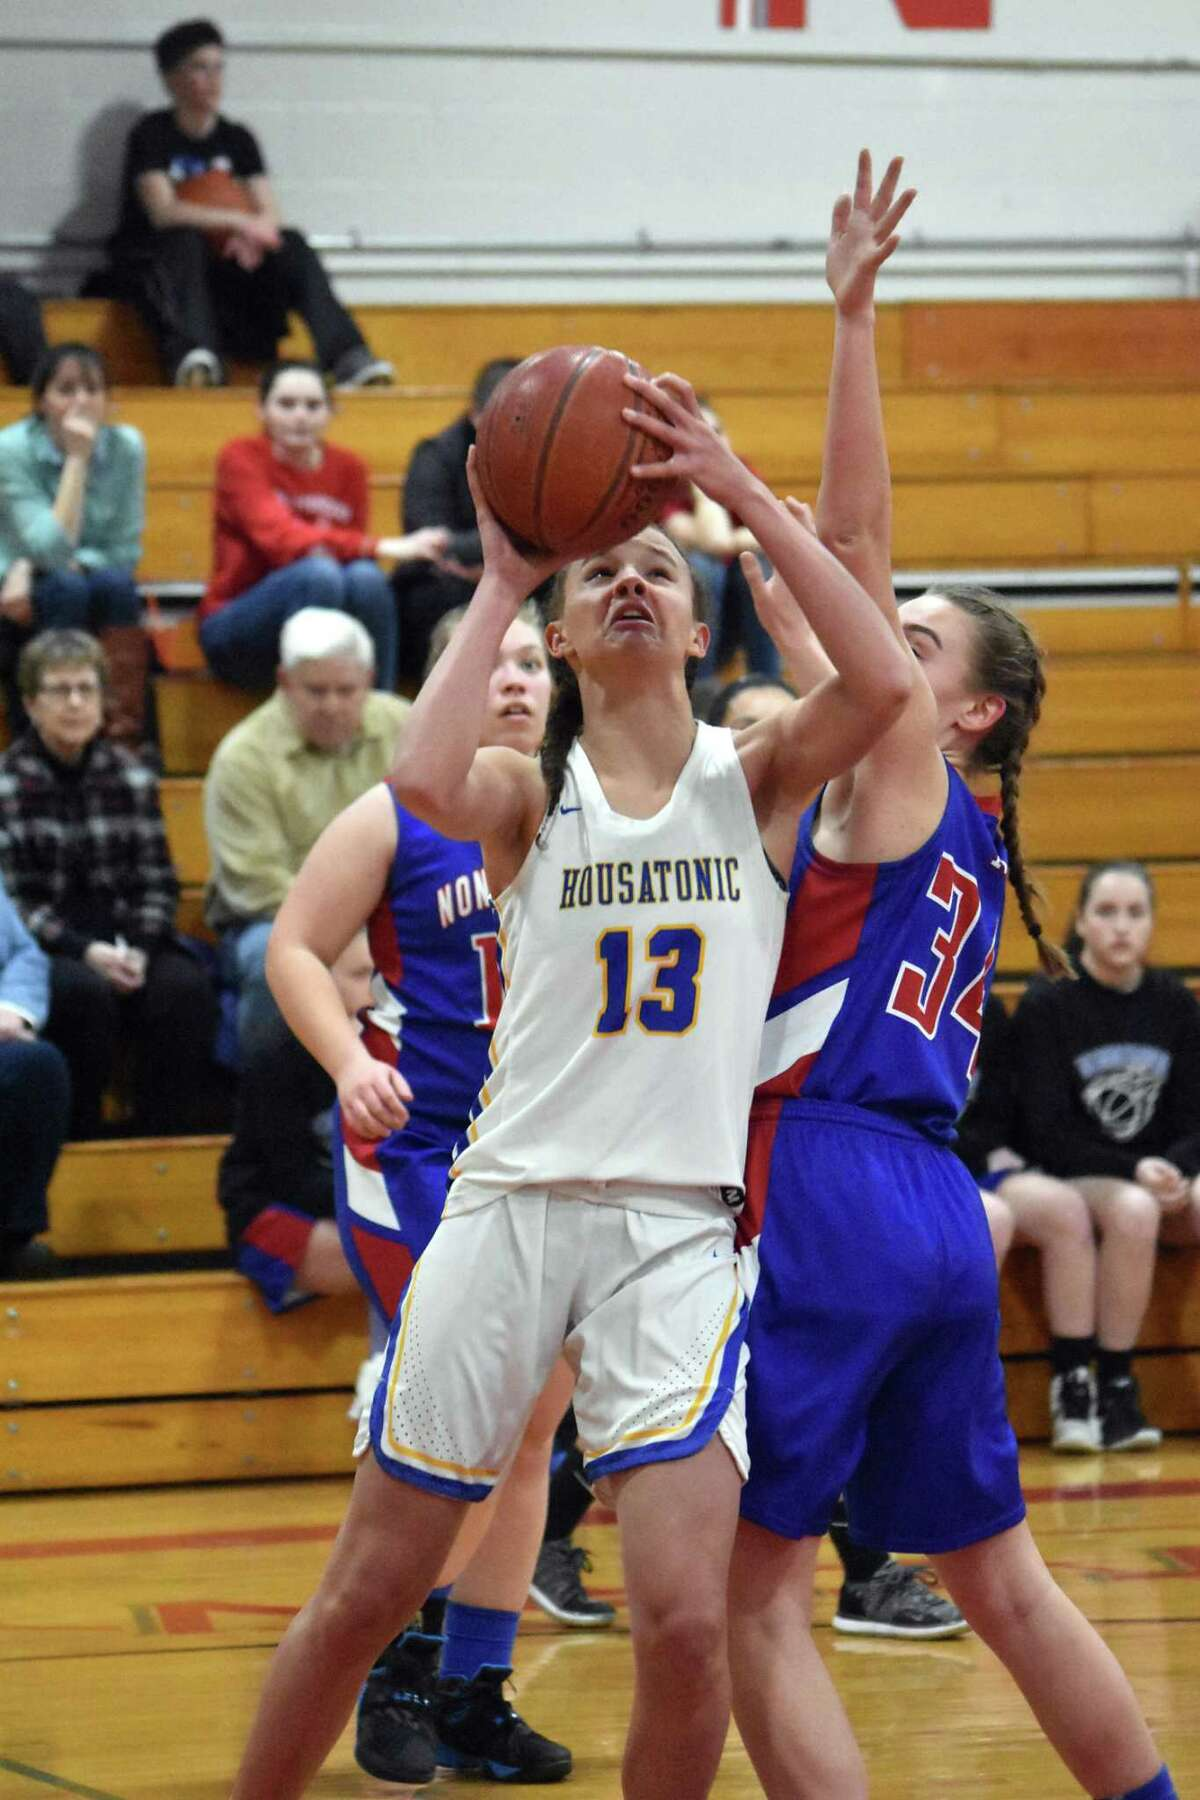 Housatonic's Sydney Segalla goes up for a shot during the Berkshire League semifinals at Northwestern high school on Tuesday, Feb. 19, 2019. (Pete Pagauga, Hearst Connecticut Media)